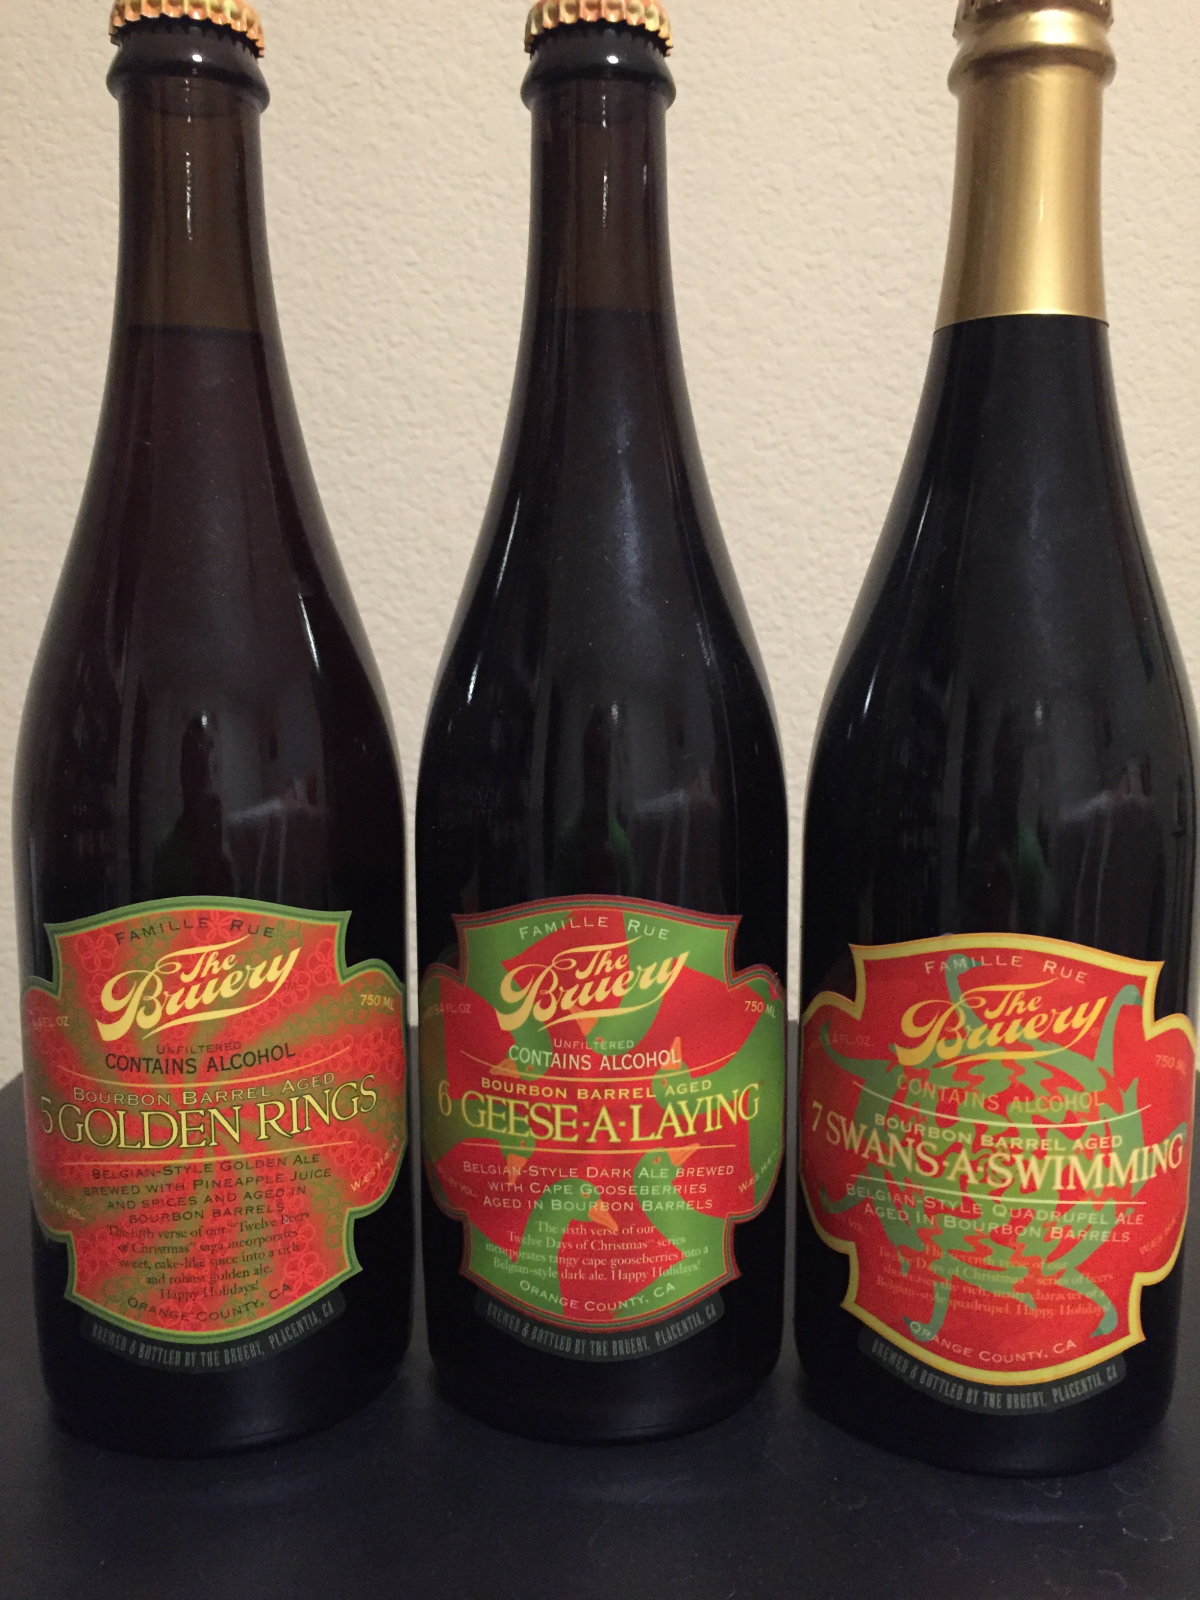 The Bruery Ba 5 Golden Rings Ba 6 Geese A Laying Ba 7 Swans A Swimming Mybeercollectibles